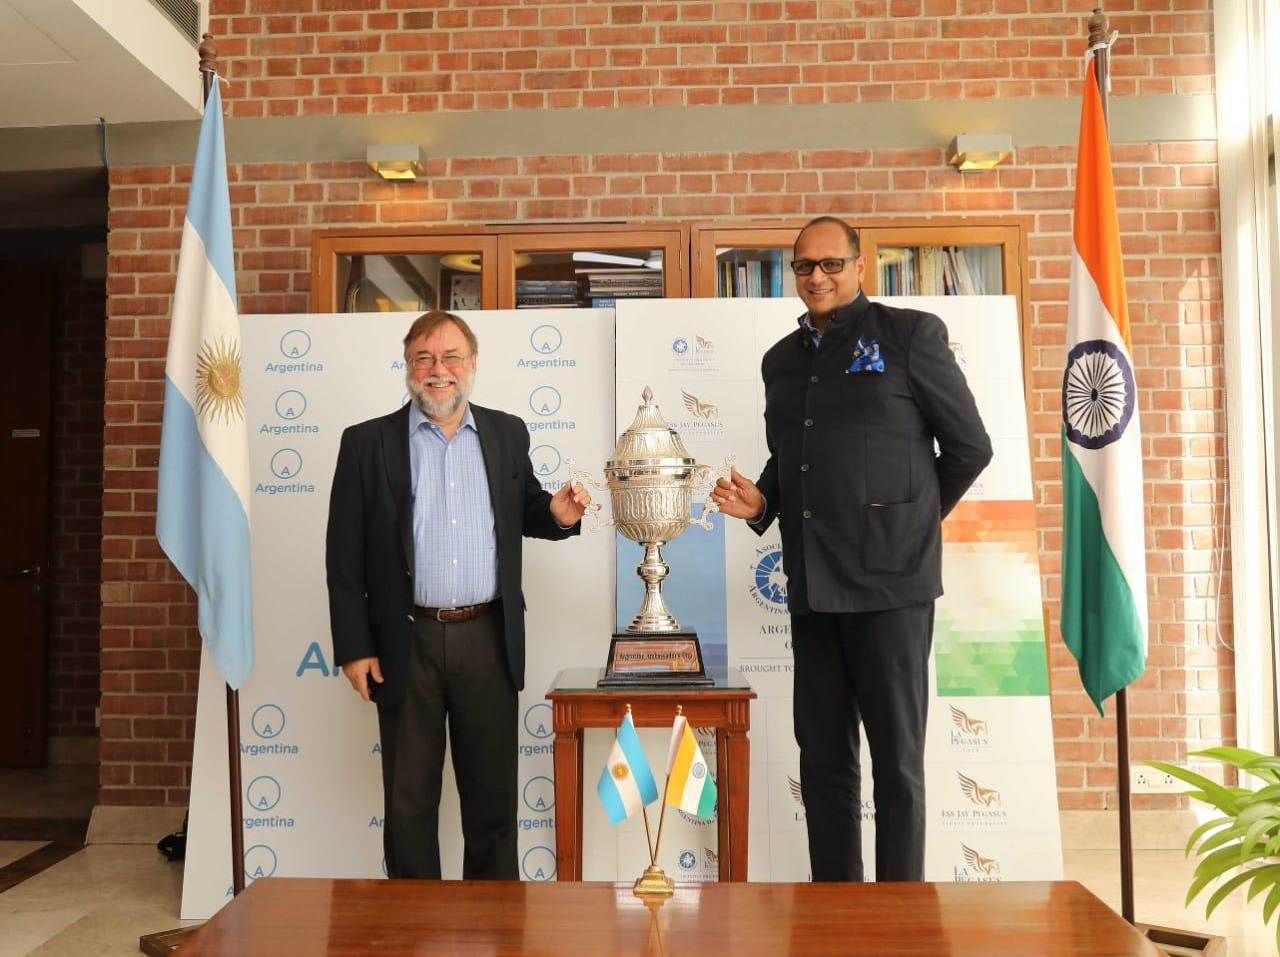 La Pegasus, Argentine Polo, Polo in Argentina, Argentine Polo International, Eduardo Novillo Astrada, Polo in Jodhpur, Polo in Gurgaon, Polo in Delhi, All Star Argentina players, High goal polo, highest goal polo in India, Sanjay Jindal, Argentina Em